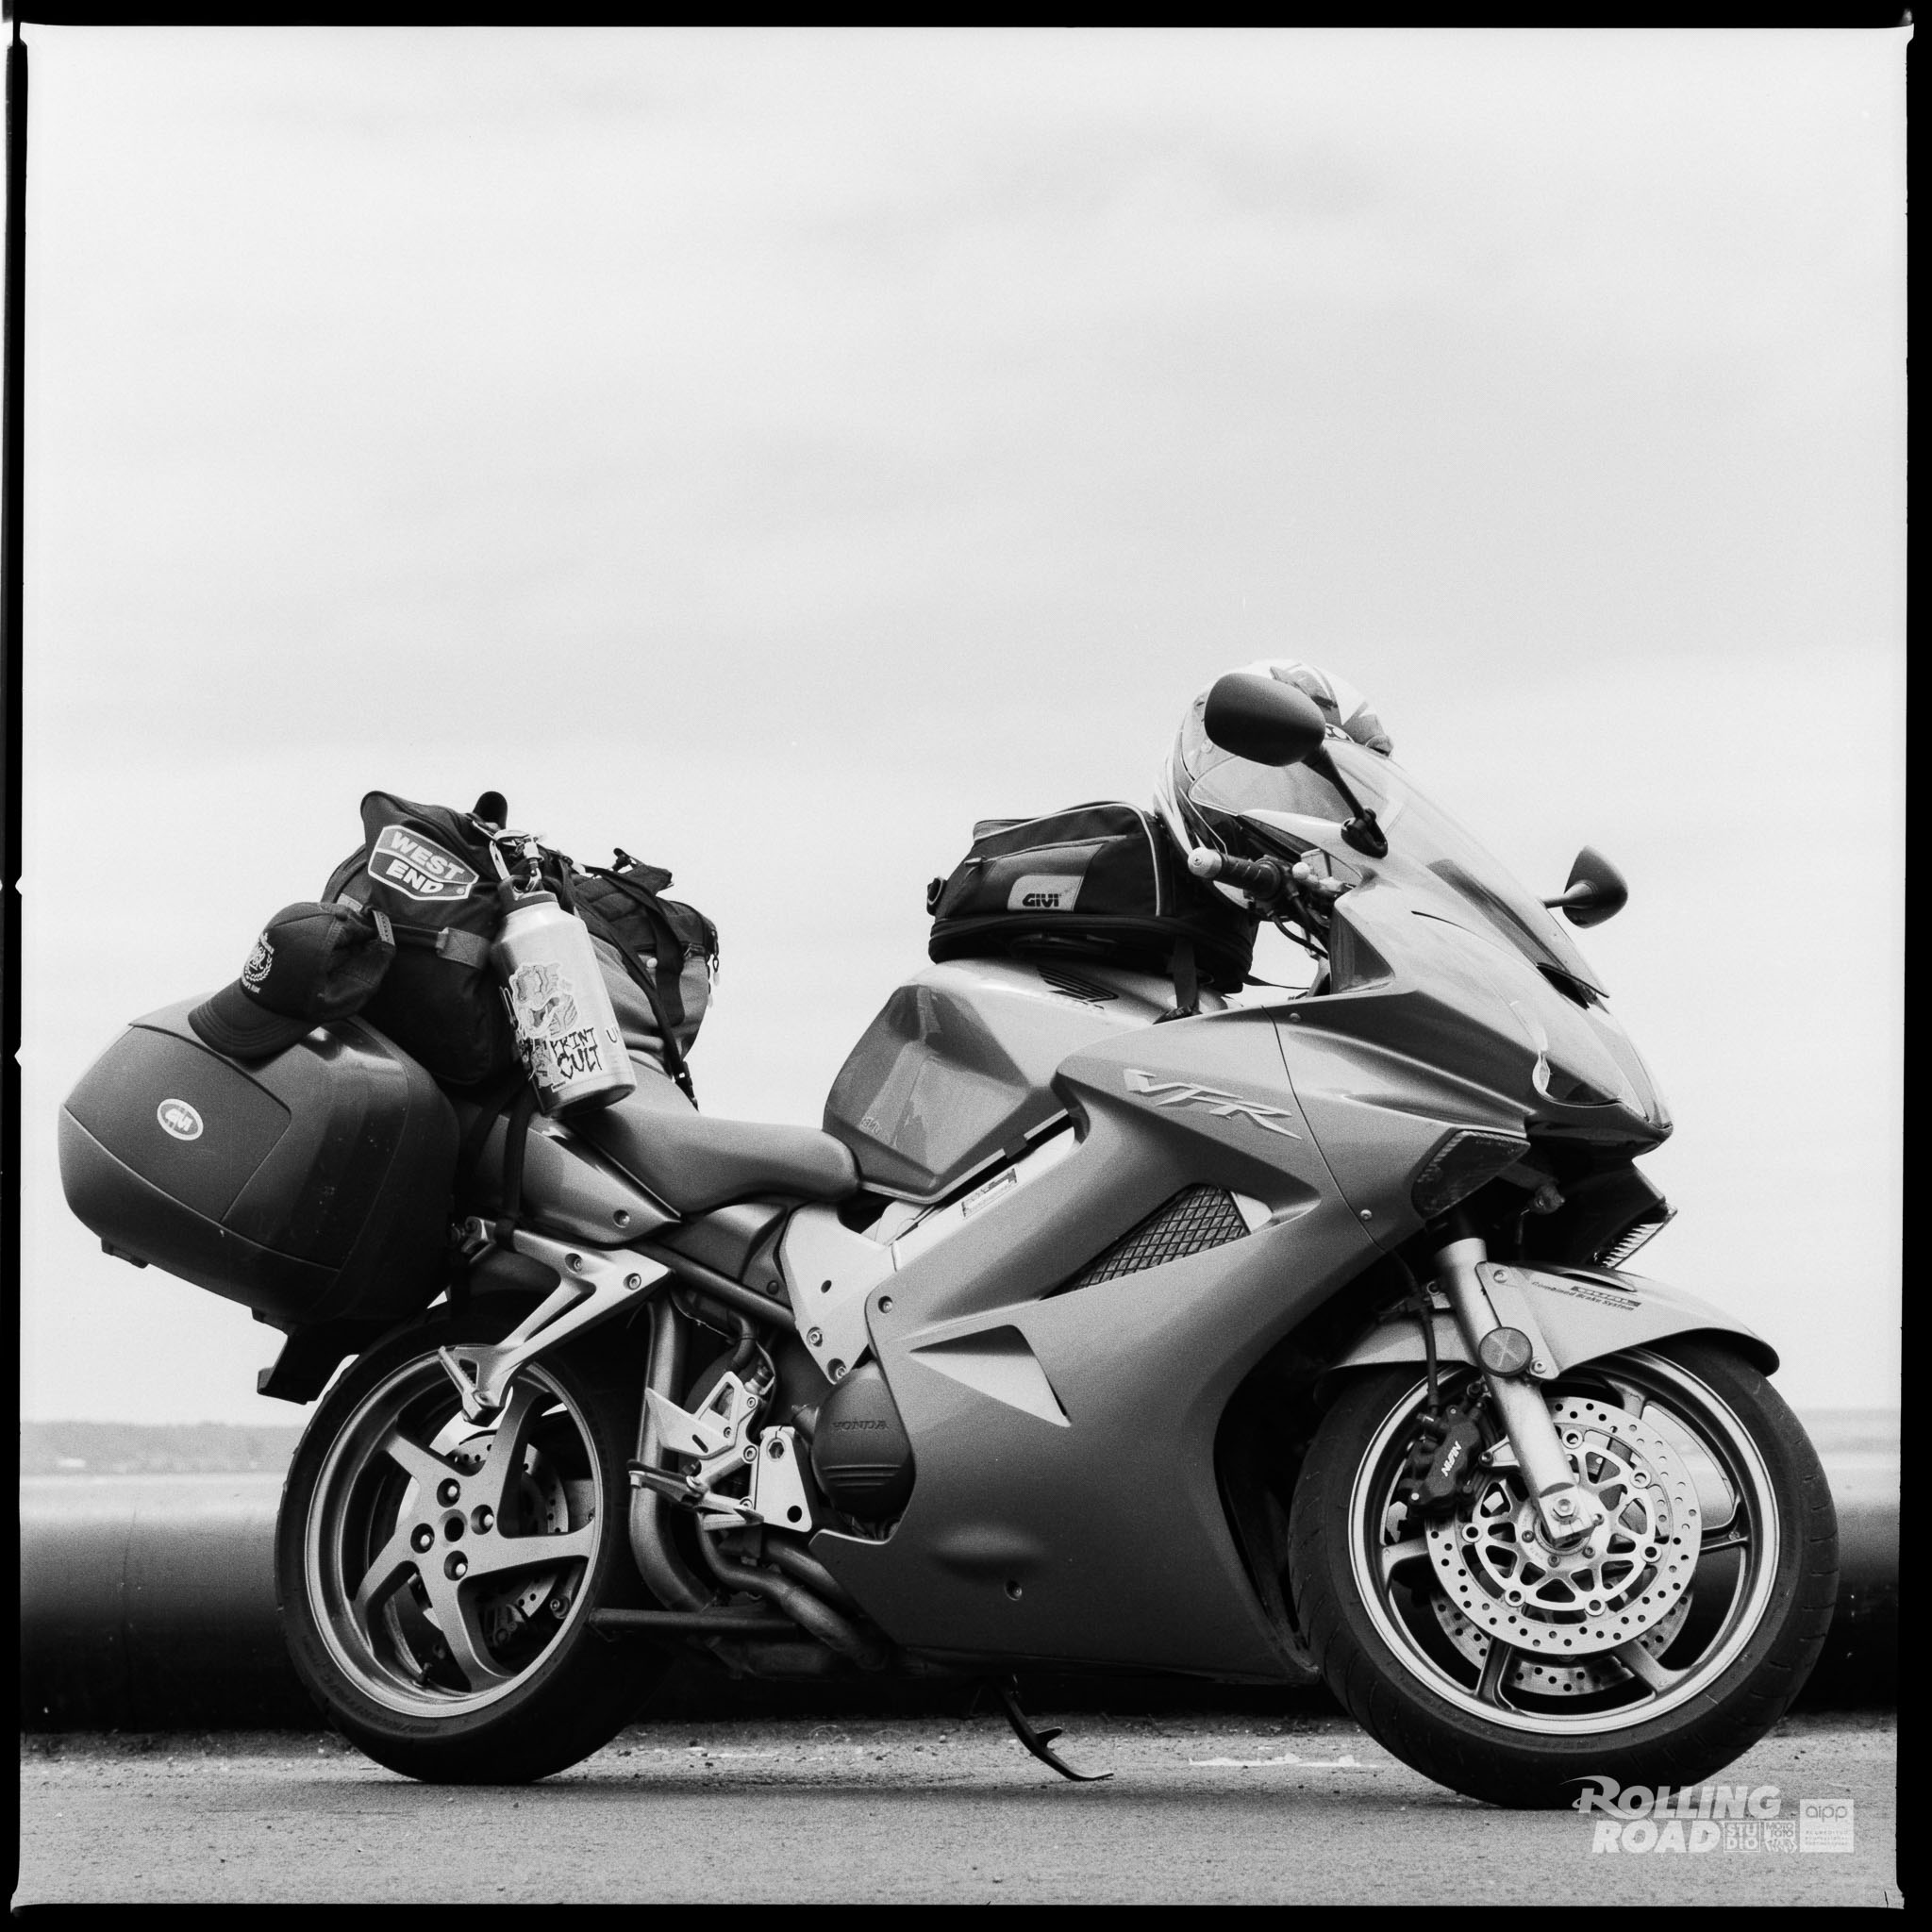 rolling-road-studio-daniel-purvis-photography-motorcycle-090.jpg